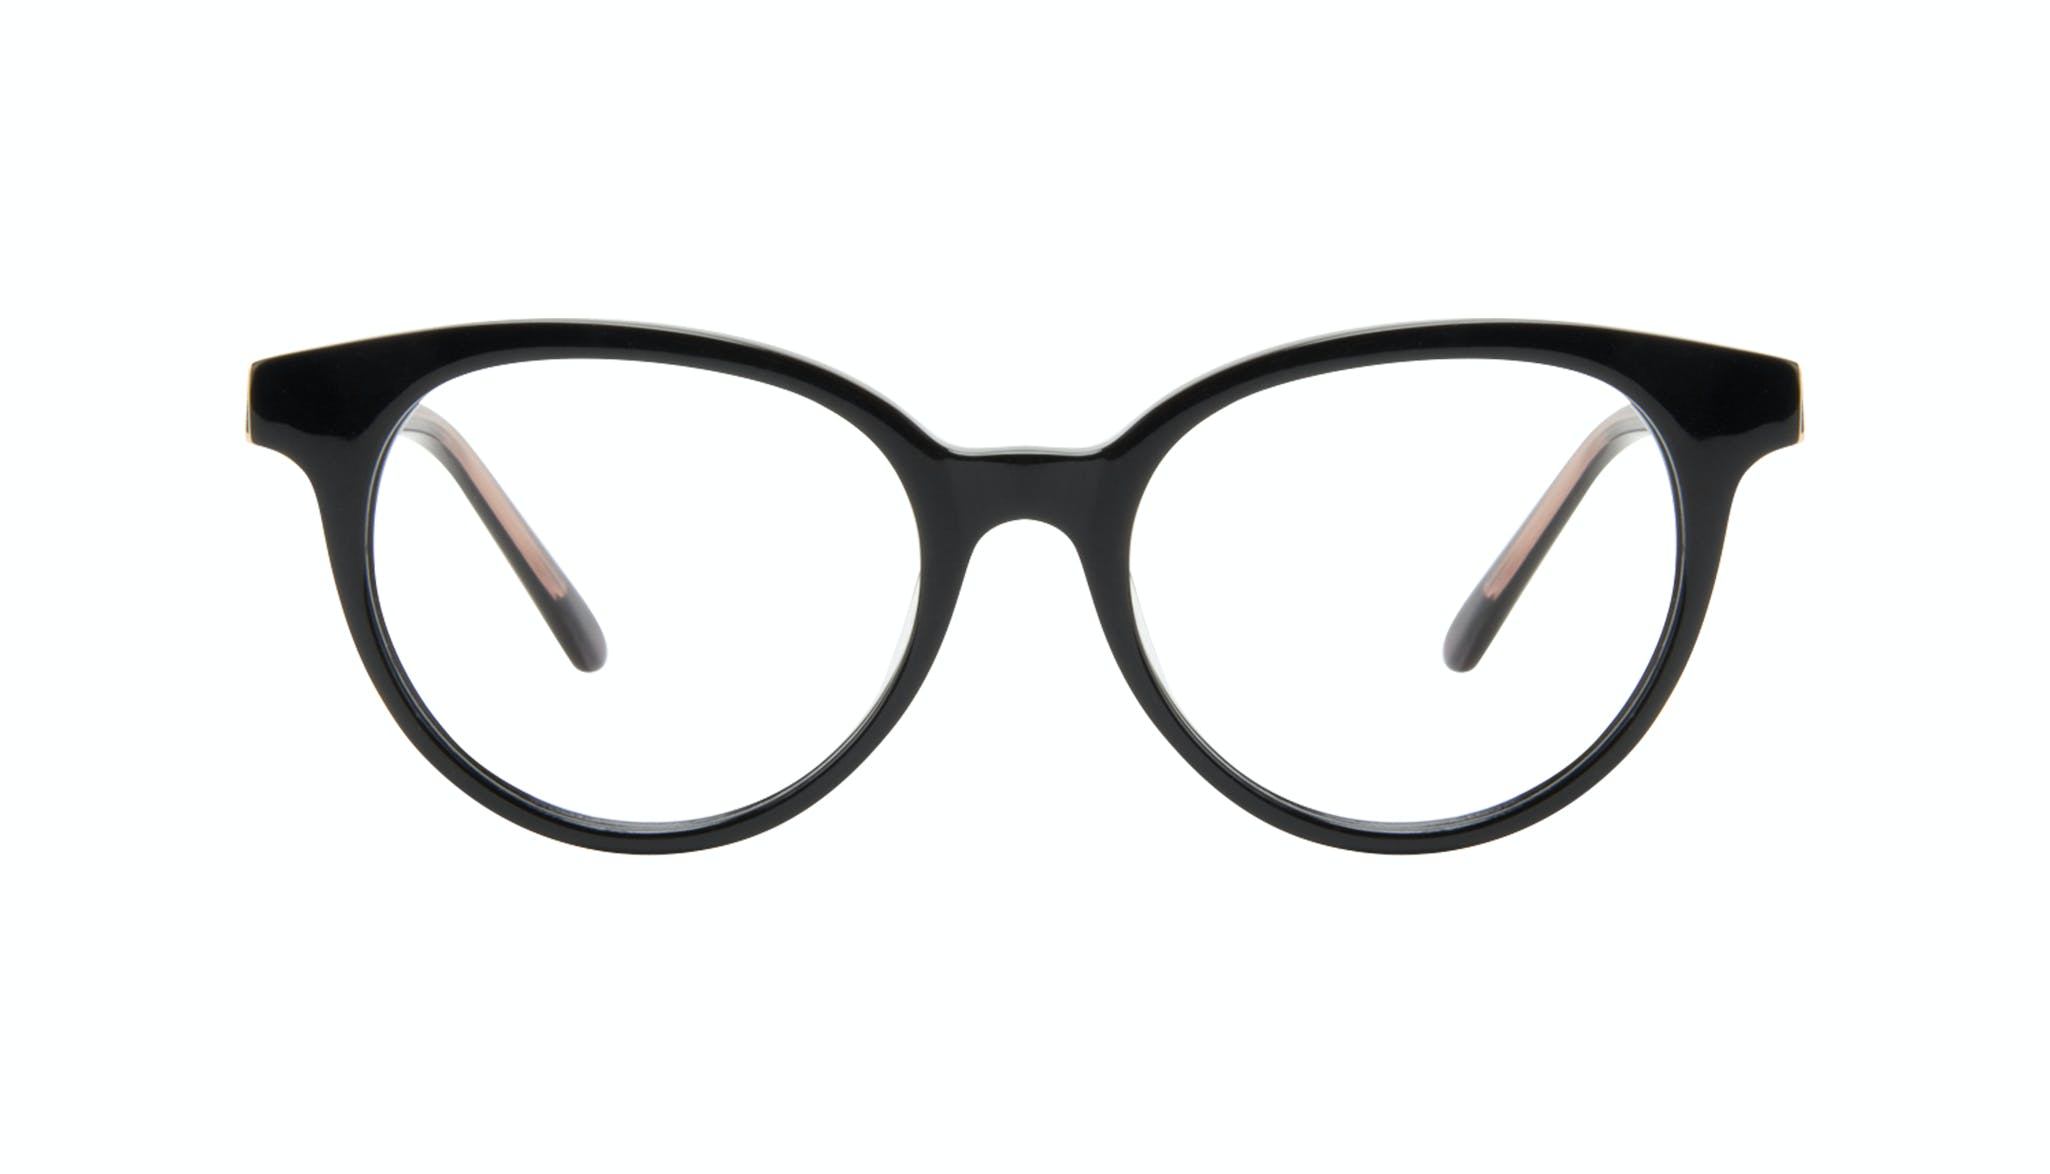 Affordable Fashion Glasses Round Eyeglasses Women Bright Black Front